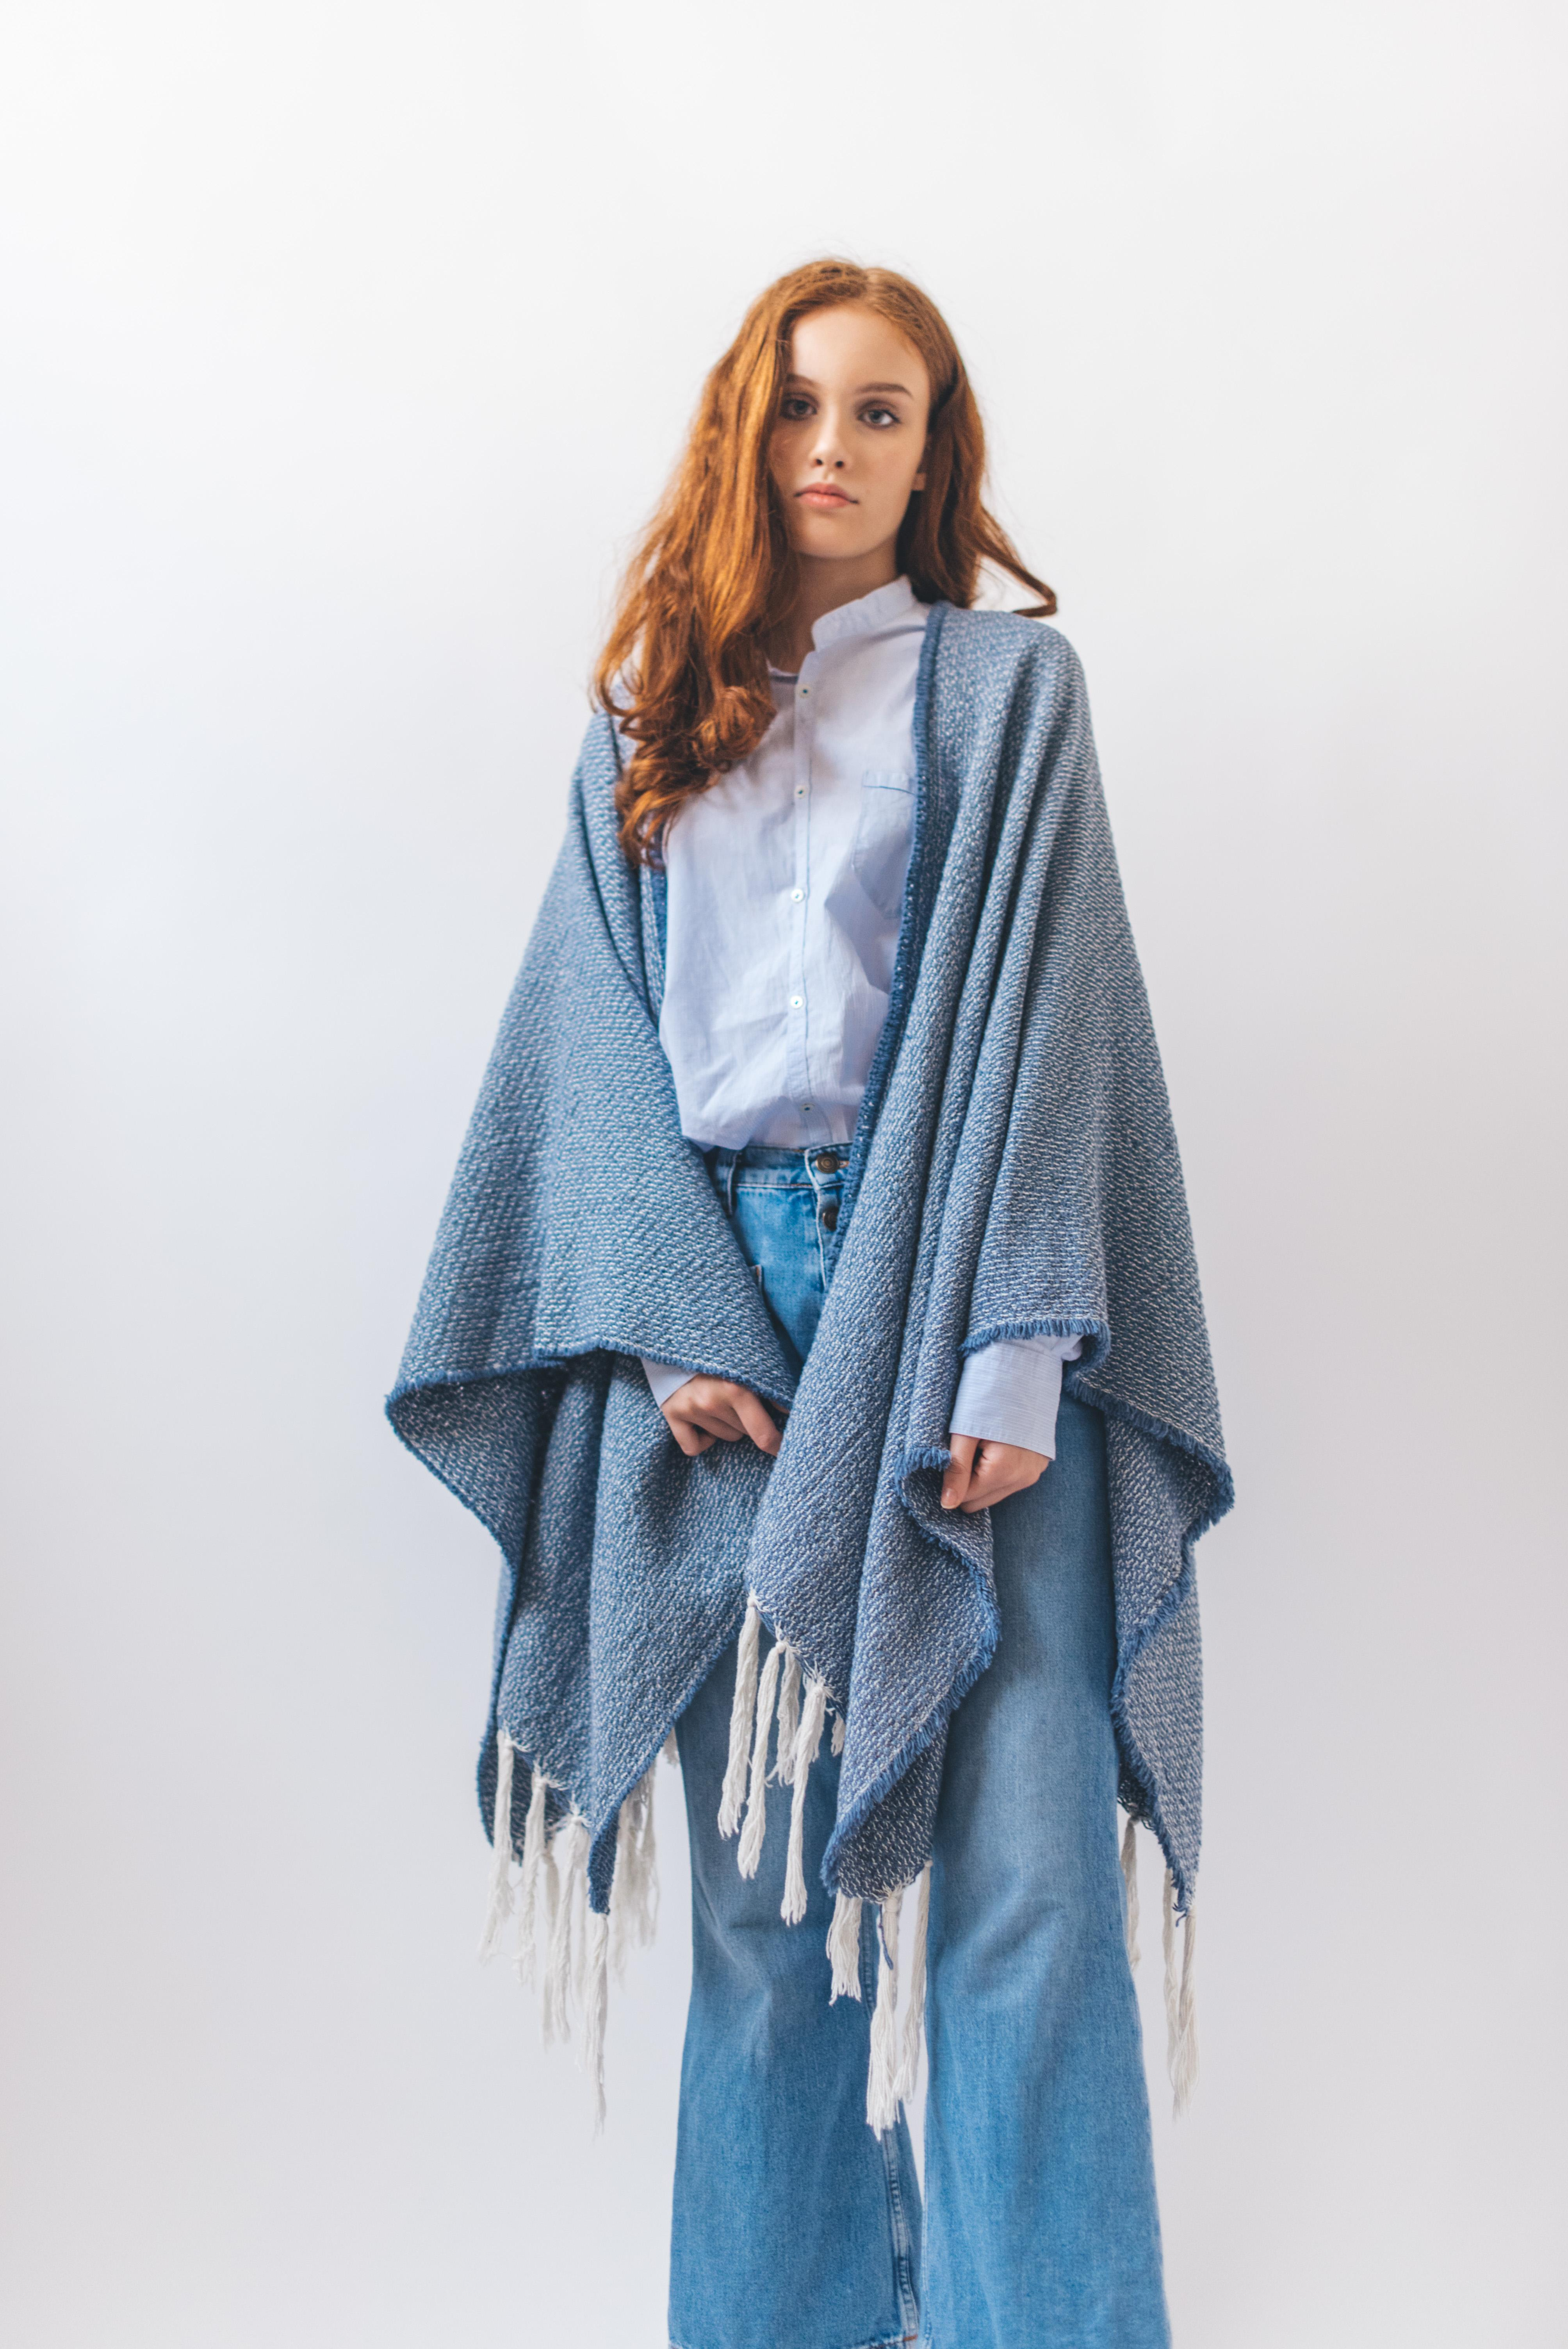 LIMITED EDITION - LIMITED EDITION - PONCHO DENIM - 1